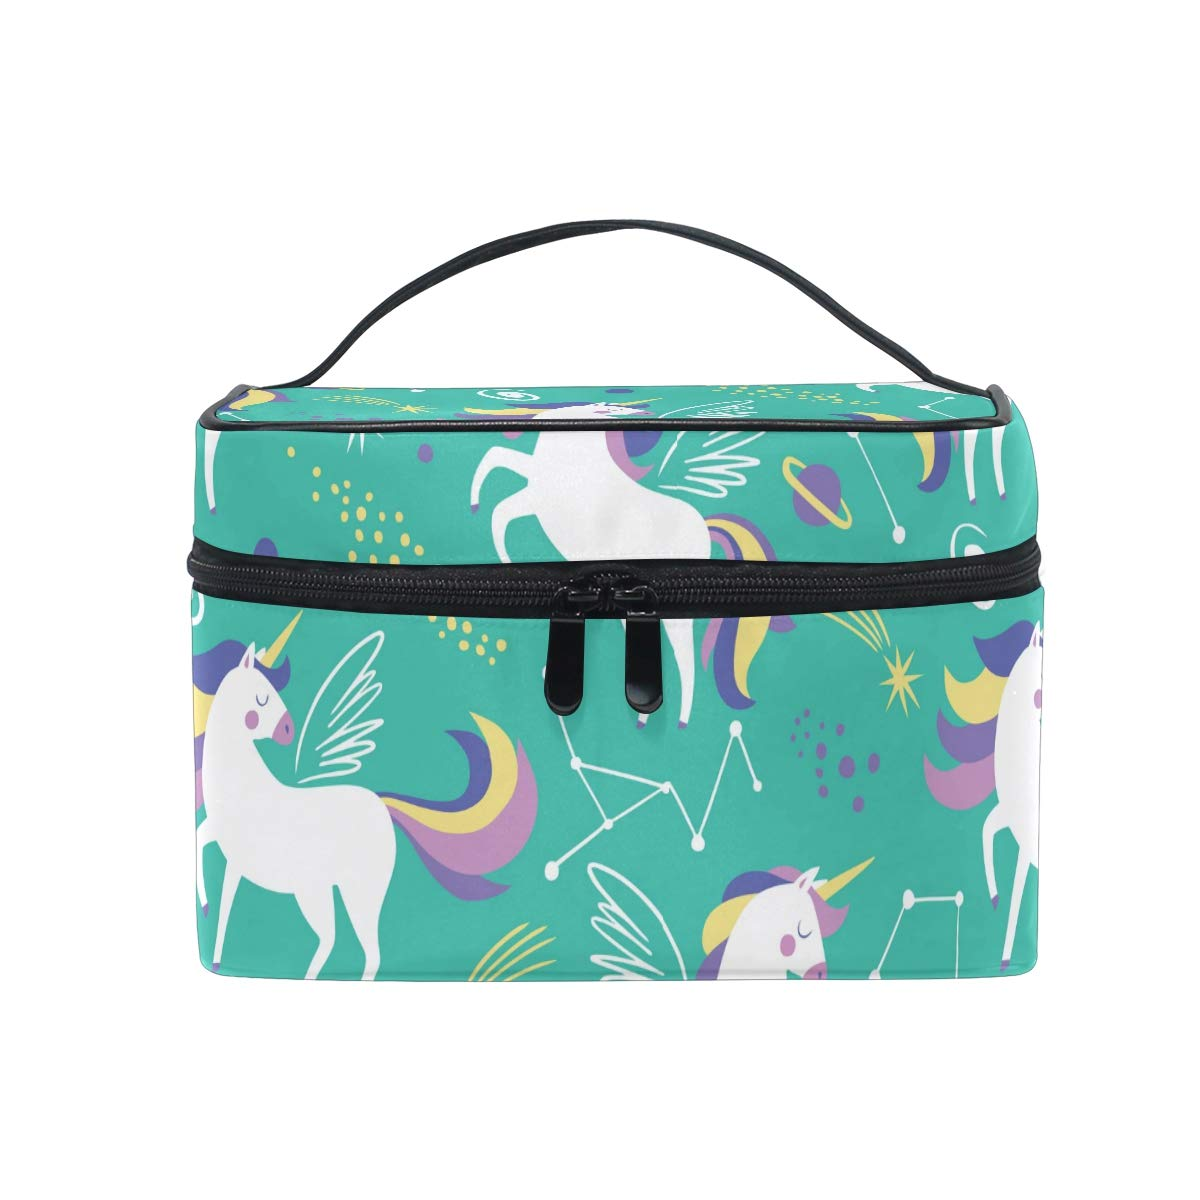 Aflyko Unicorn Toiletry Organizer Makeup Bag Cosmetic Train Cases Storage Bag Portable Medical Kits for Women Girls